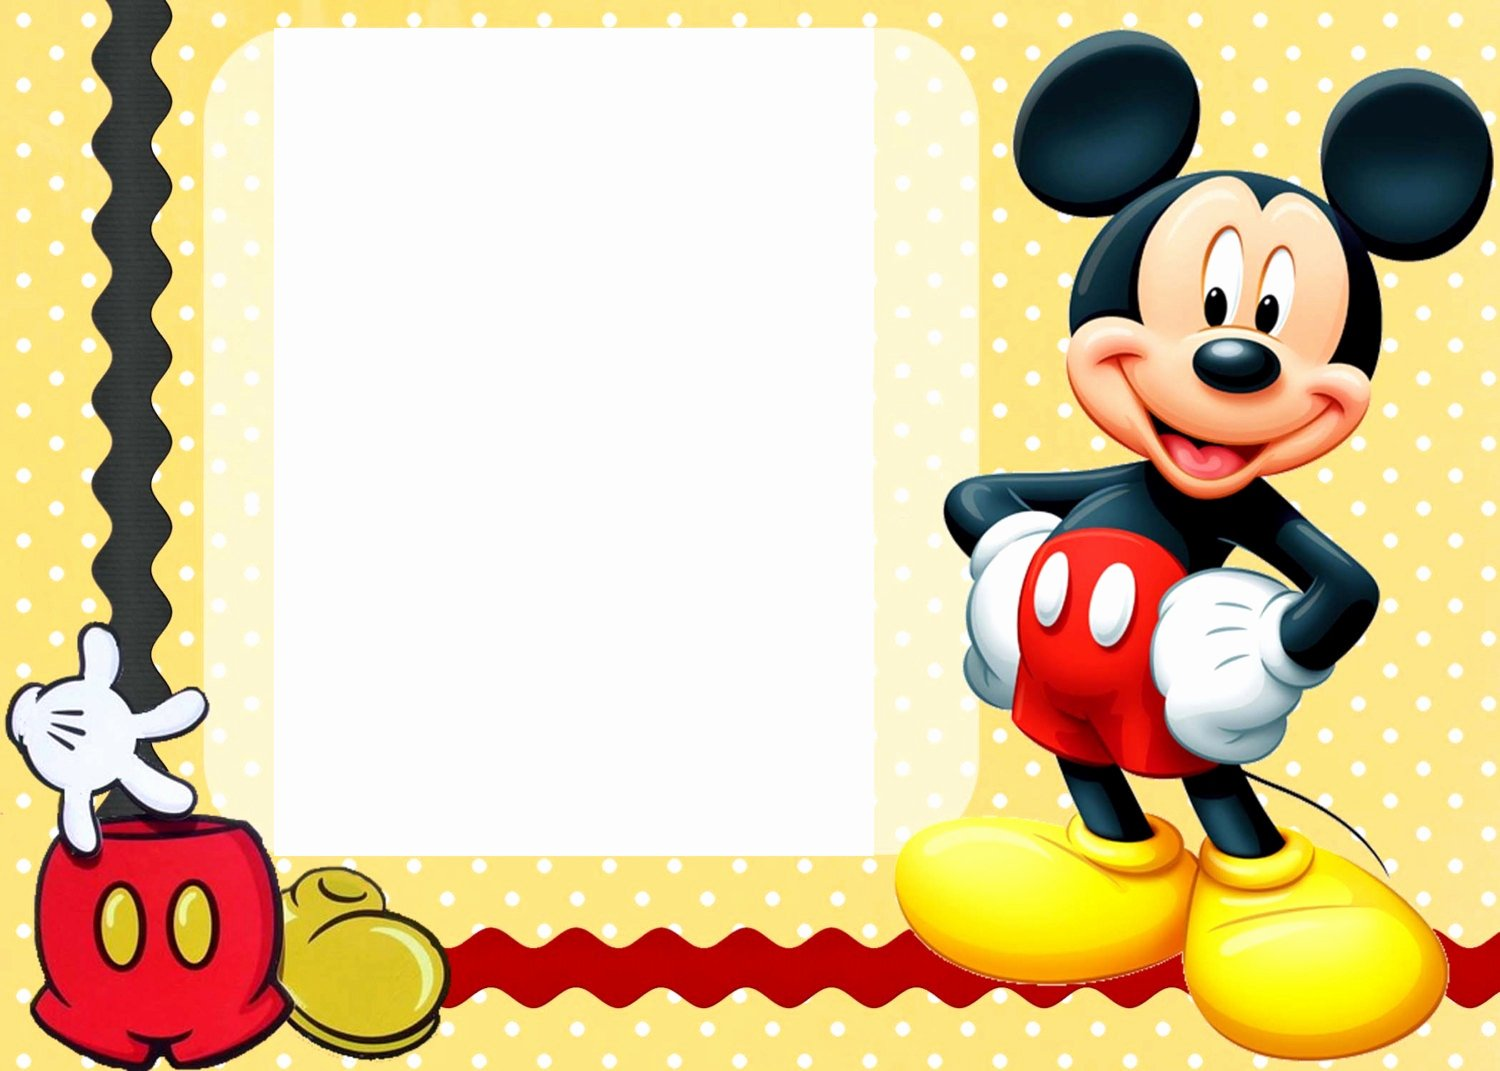 Disney Printable Birthday Cards Lovely Free Printable Mickey Mouse Birthday Cards